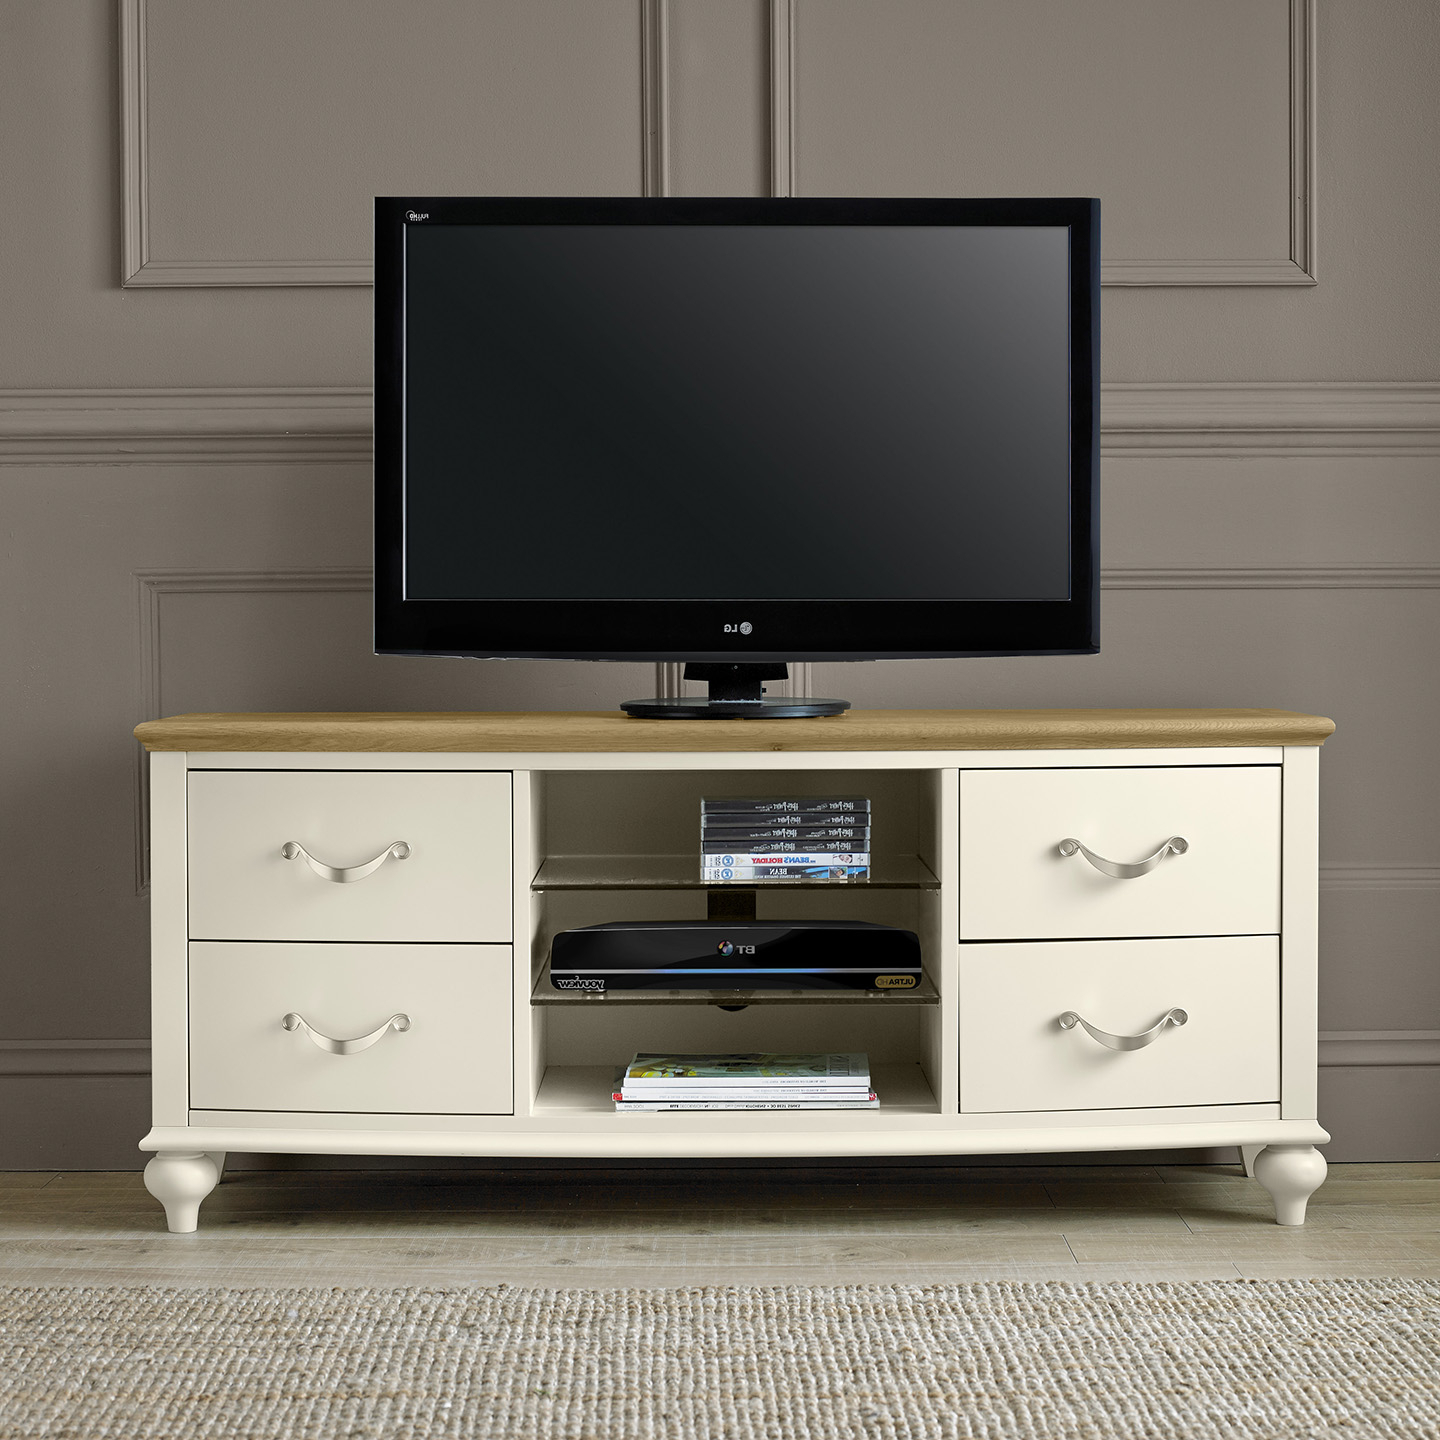 Tv Entertainment Units Intended For 2018 Montreux Tv Entertainment Unit – Cream – Upstairs Downstairs (View 14 of 20)